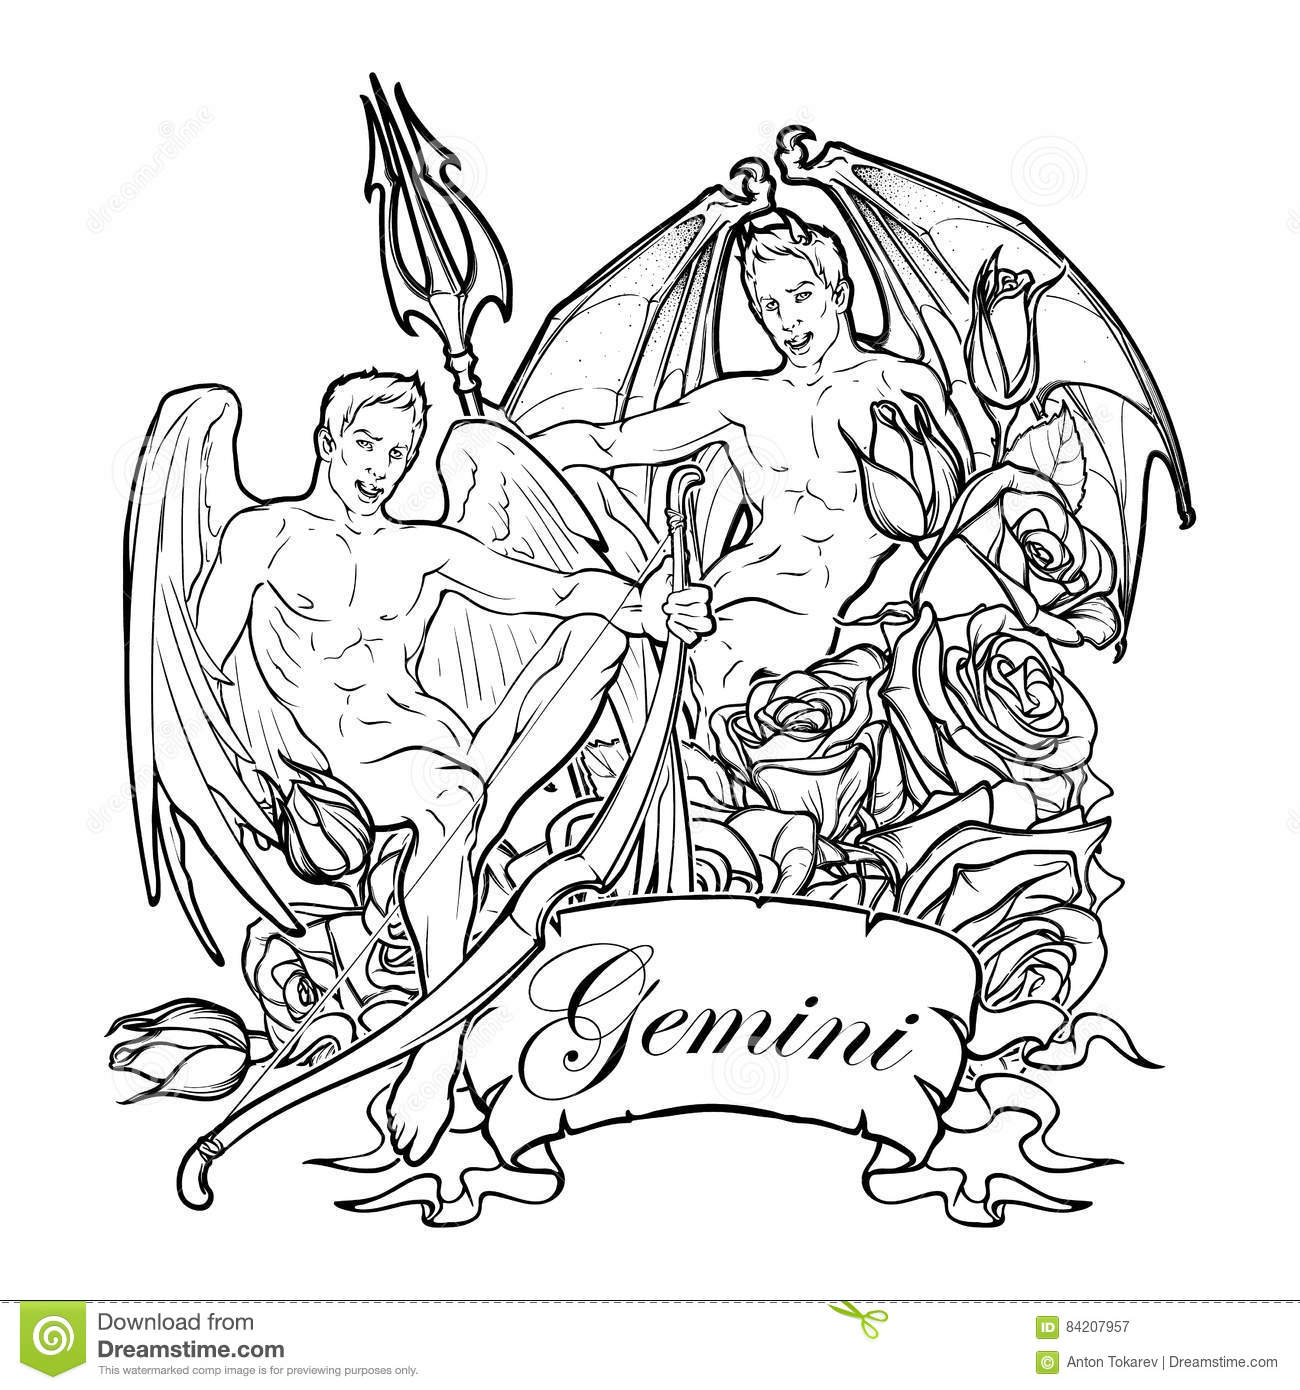 africain zodiac coloring pages - photo#3